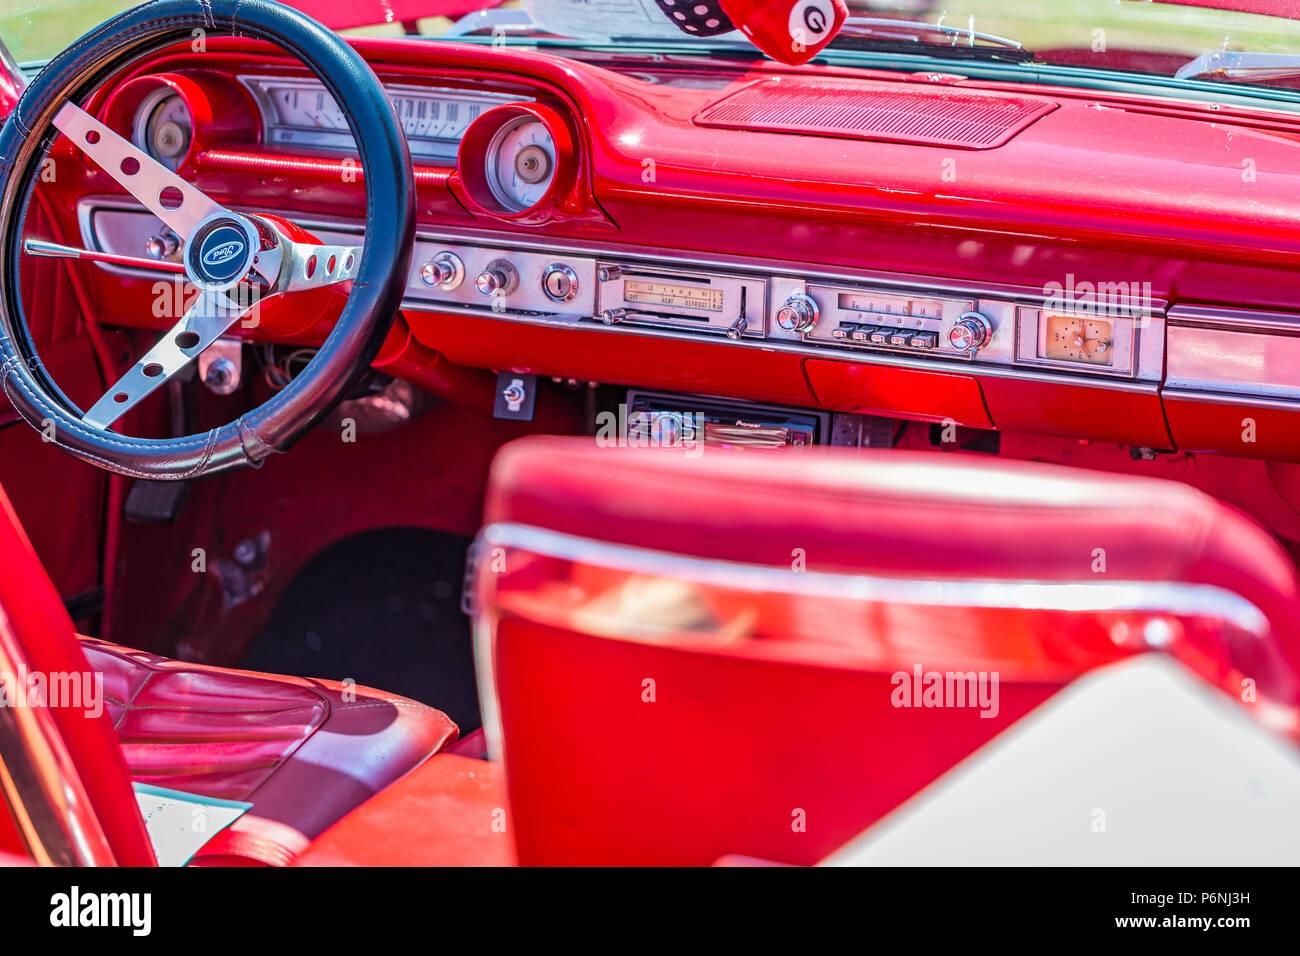 1964 Ford Galaxie 500 Stock Photos & 1964 Ford Galaxie 500 Stock